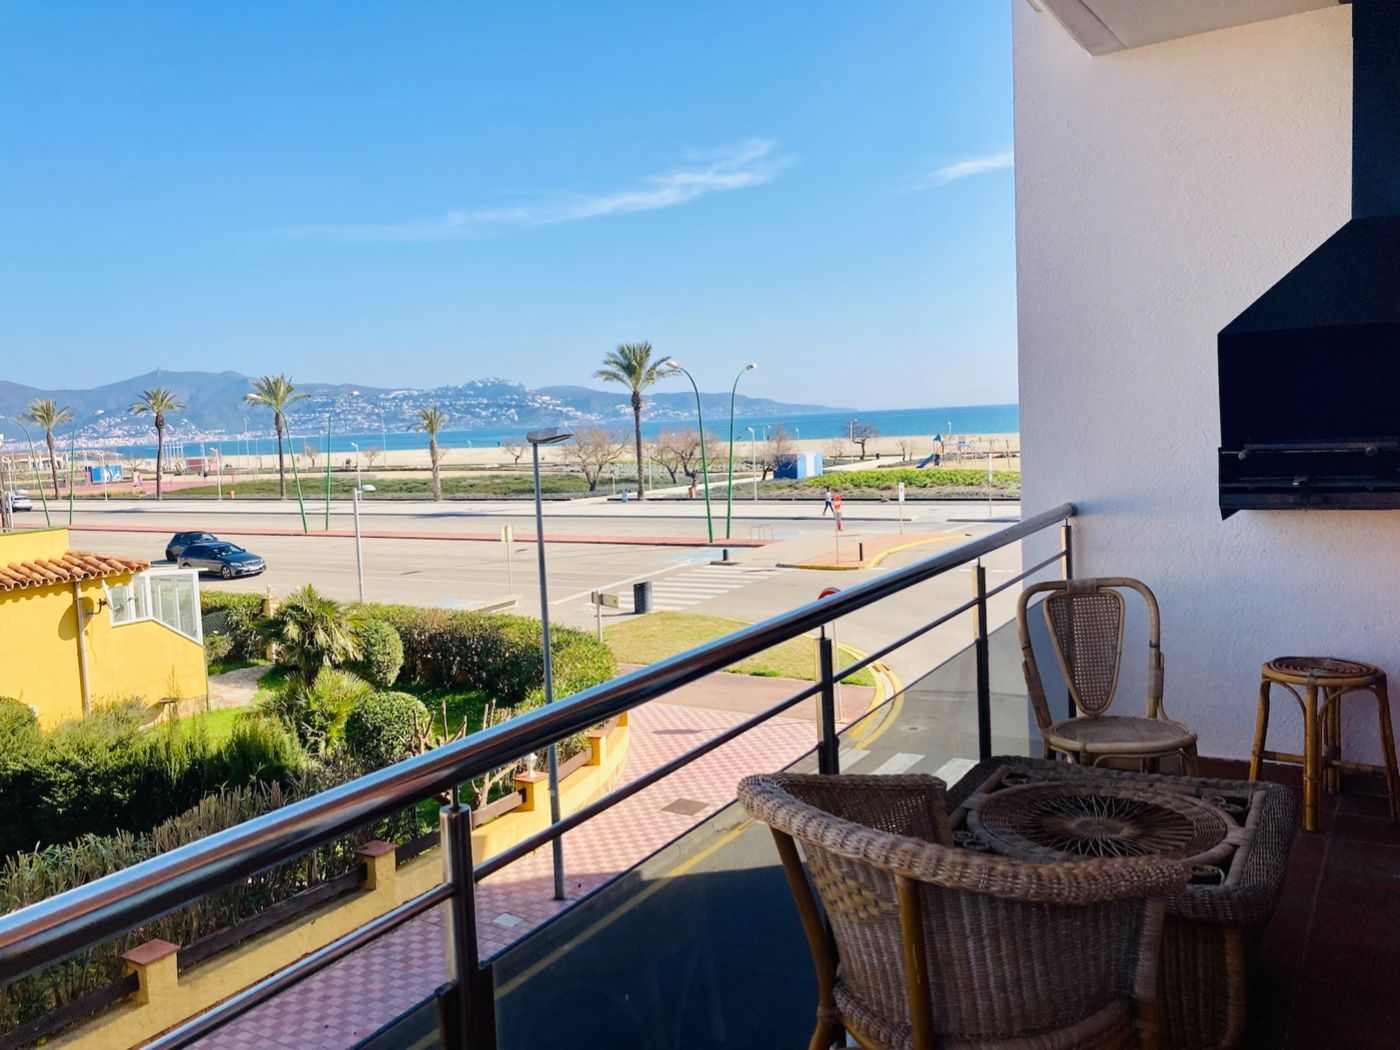 Rent Apartment in Paseo maritimo, sn. Piso en frente al mar